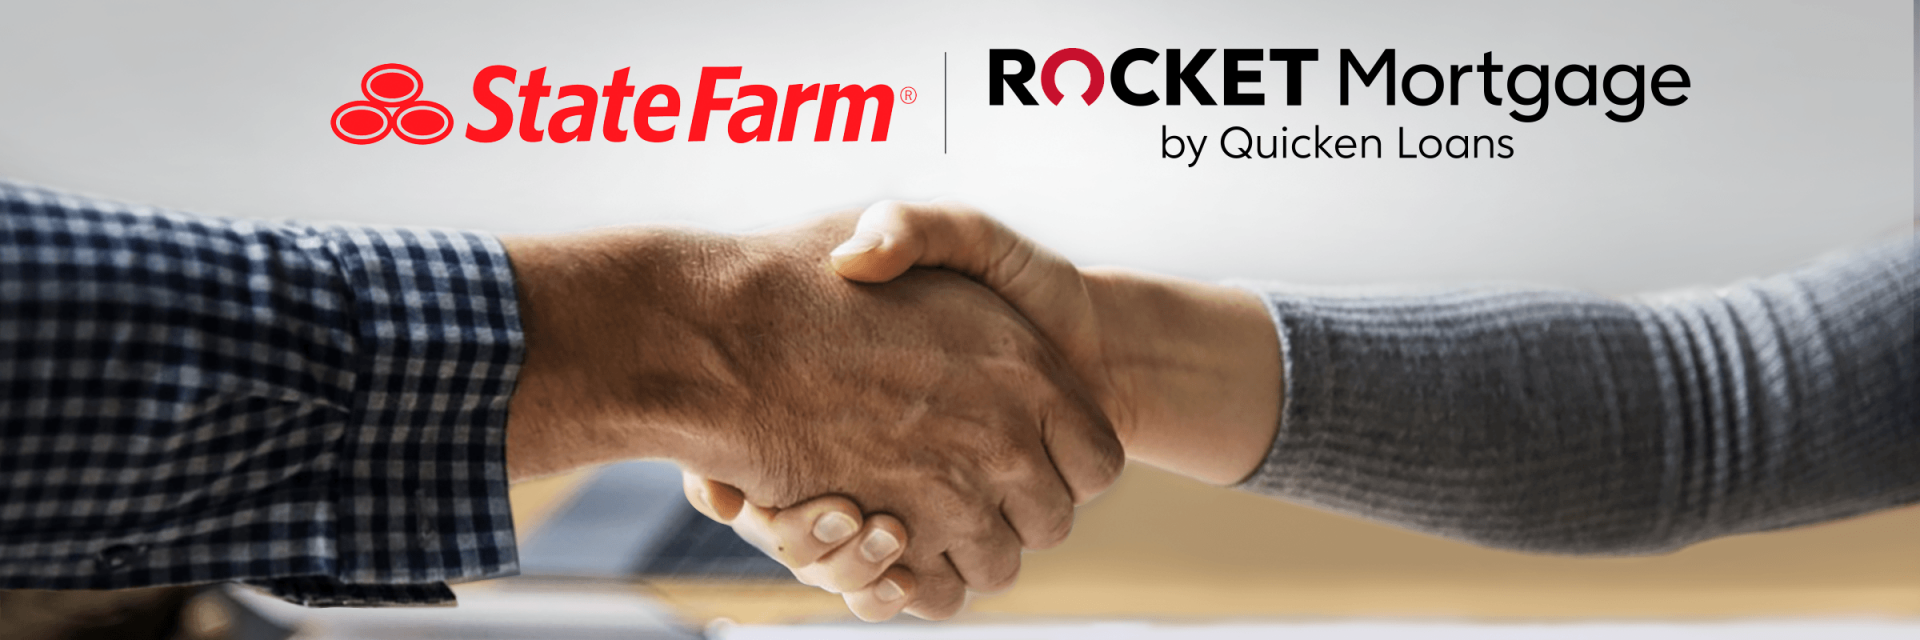 tate Farm Announces Alliance Bringing Rocket Mortgage's Award-winning Mortgage Process to its Customers